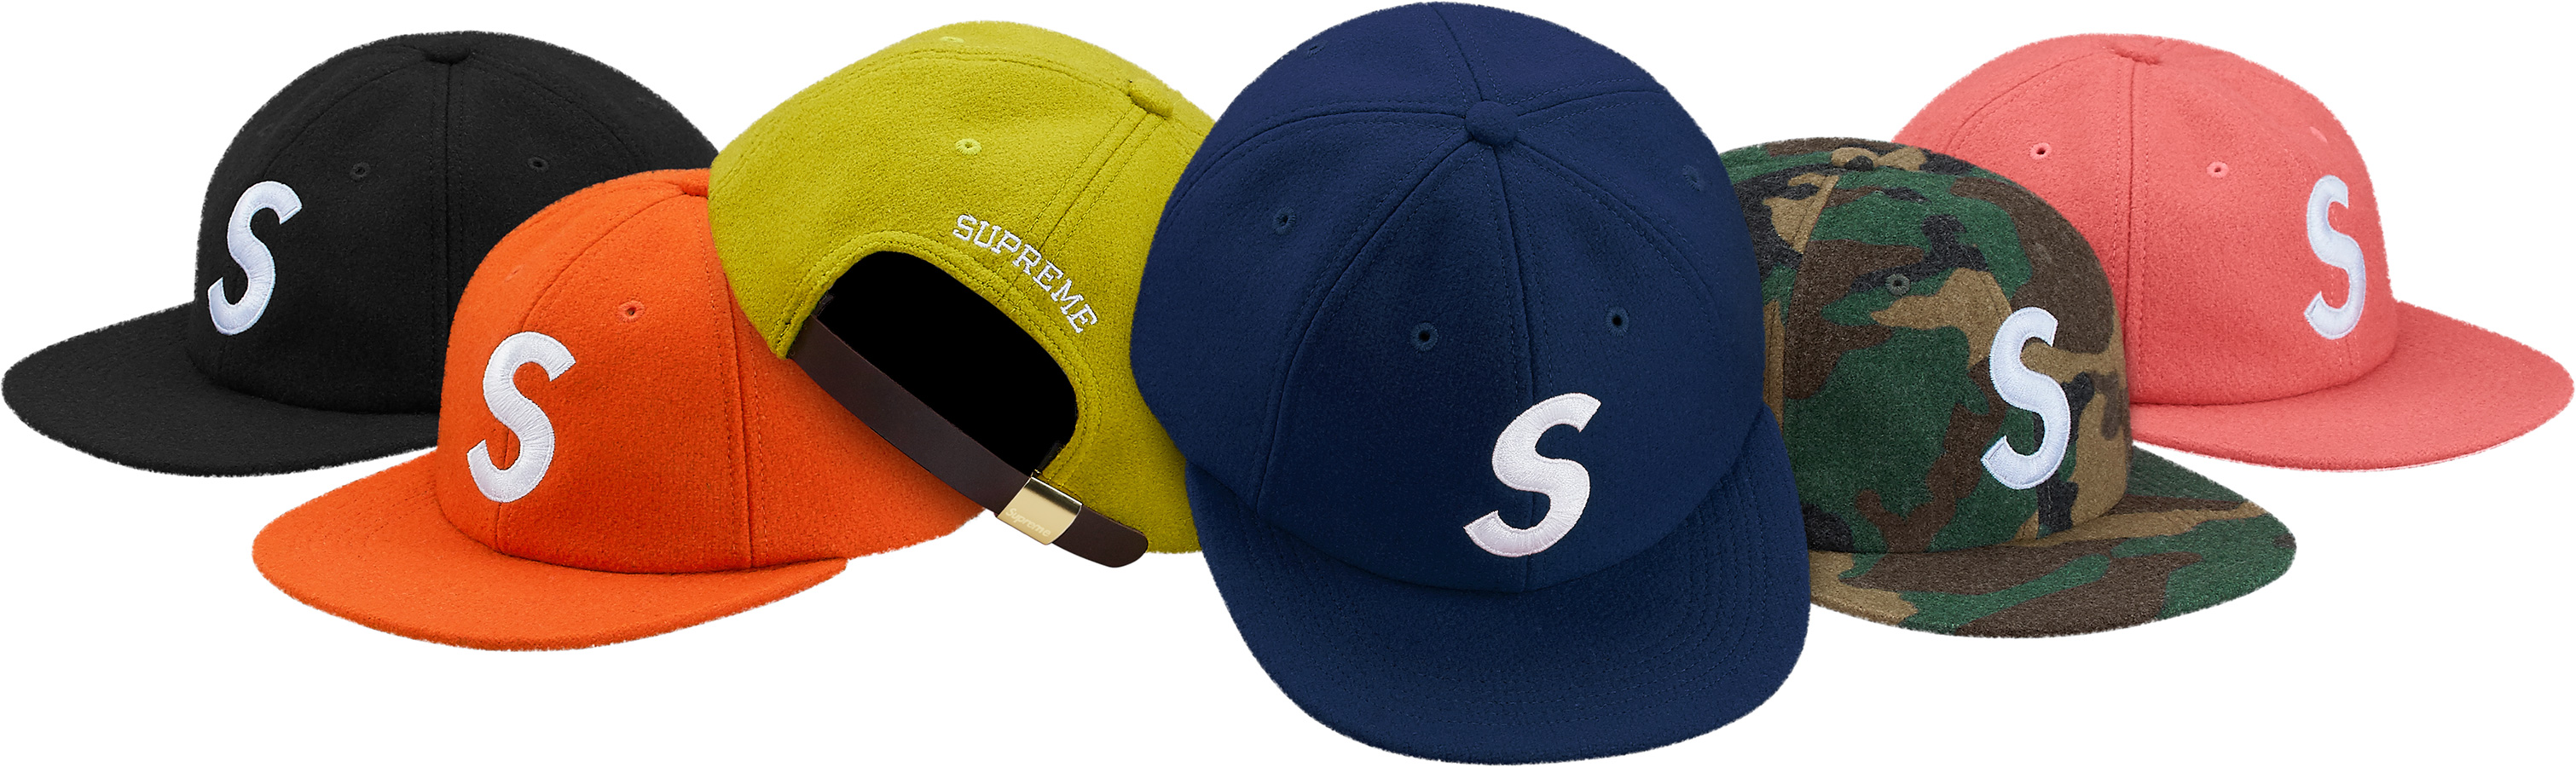 ac39f4c3ce9 HYPE5.PL • View topicSupreme Painted Floral Camp Cap i Wool S Logo 6 ...